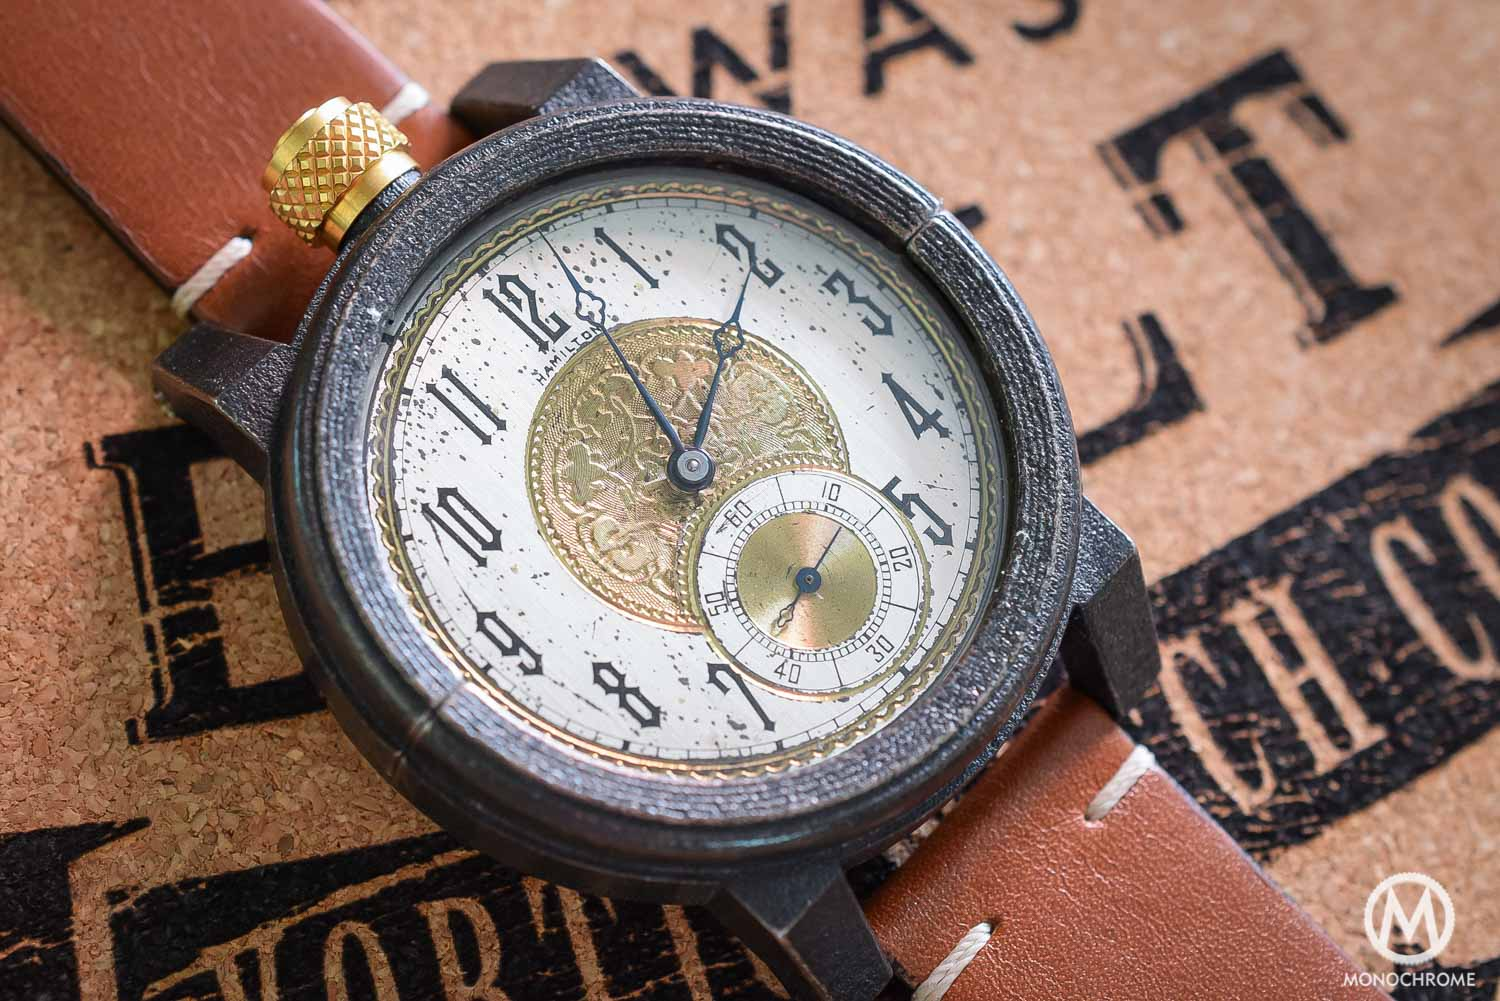 Vortic Watch Co - antique movements and 3D printed cases - 8